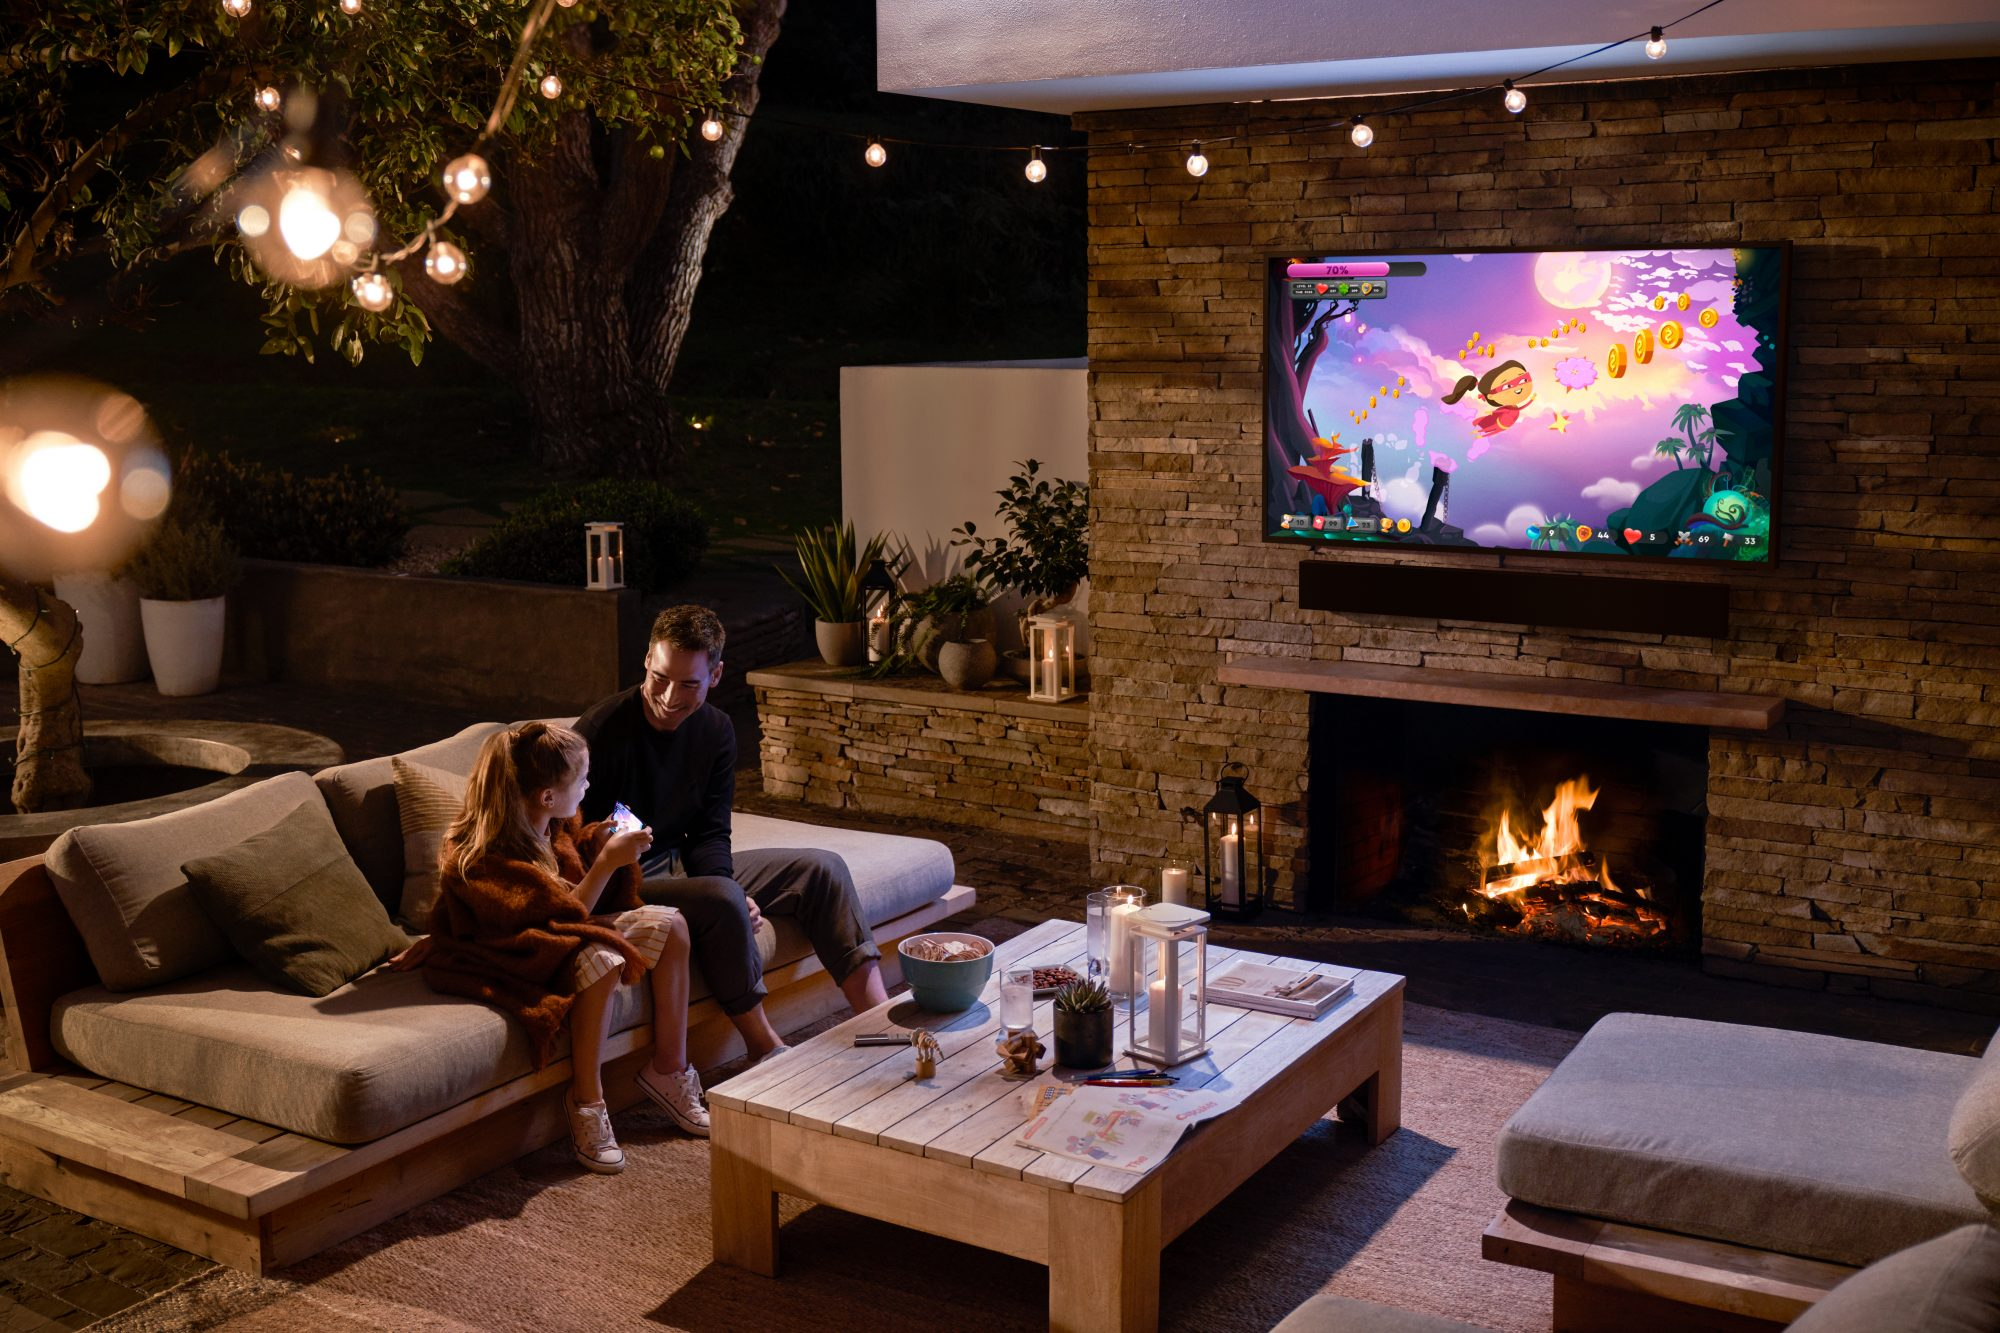 father and daughter smiling while watching tv outdoors